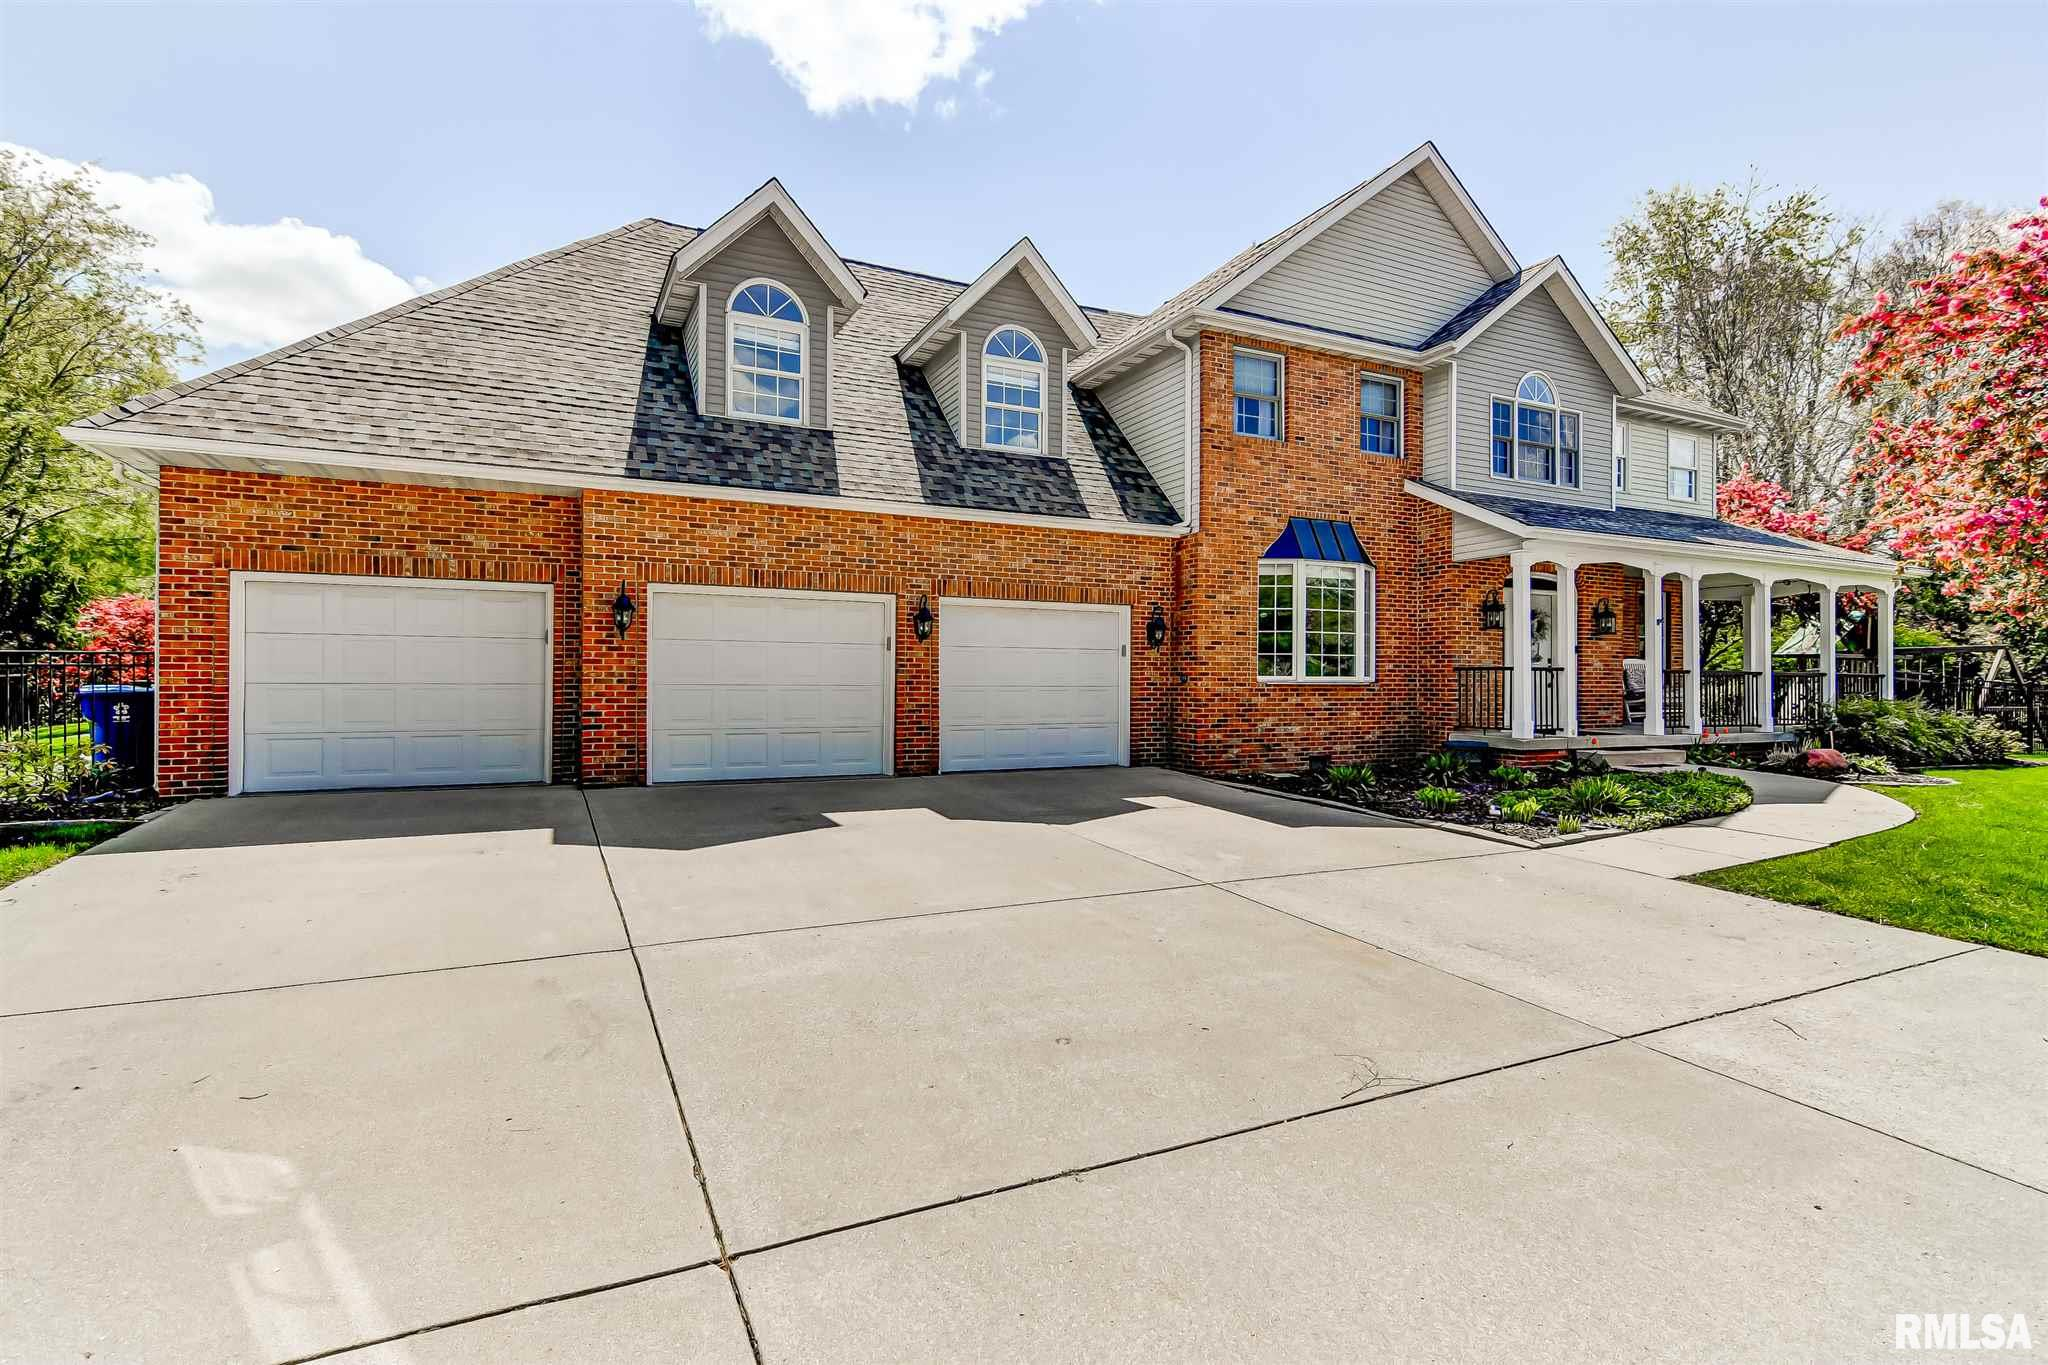 2 WOODLAND Property Photo - Rochester, IL real estate listing